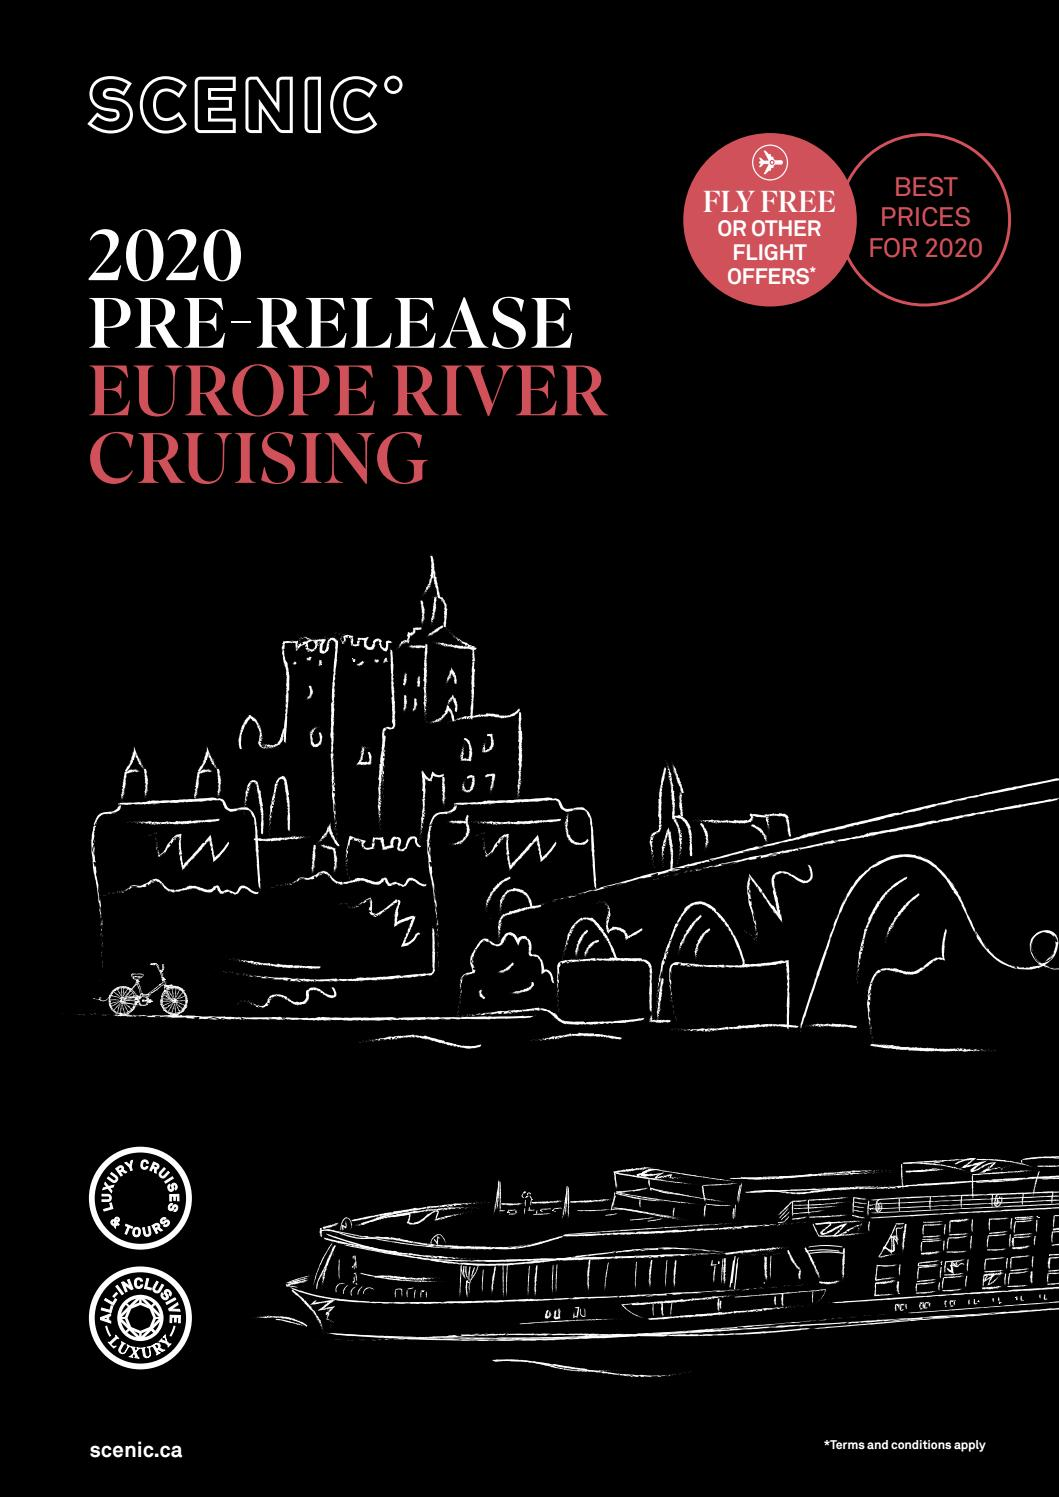 Scenic Europe River Cruising 2020 Pre-Release by Scenic